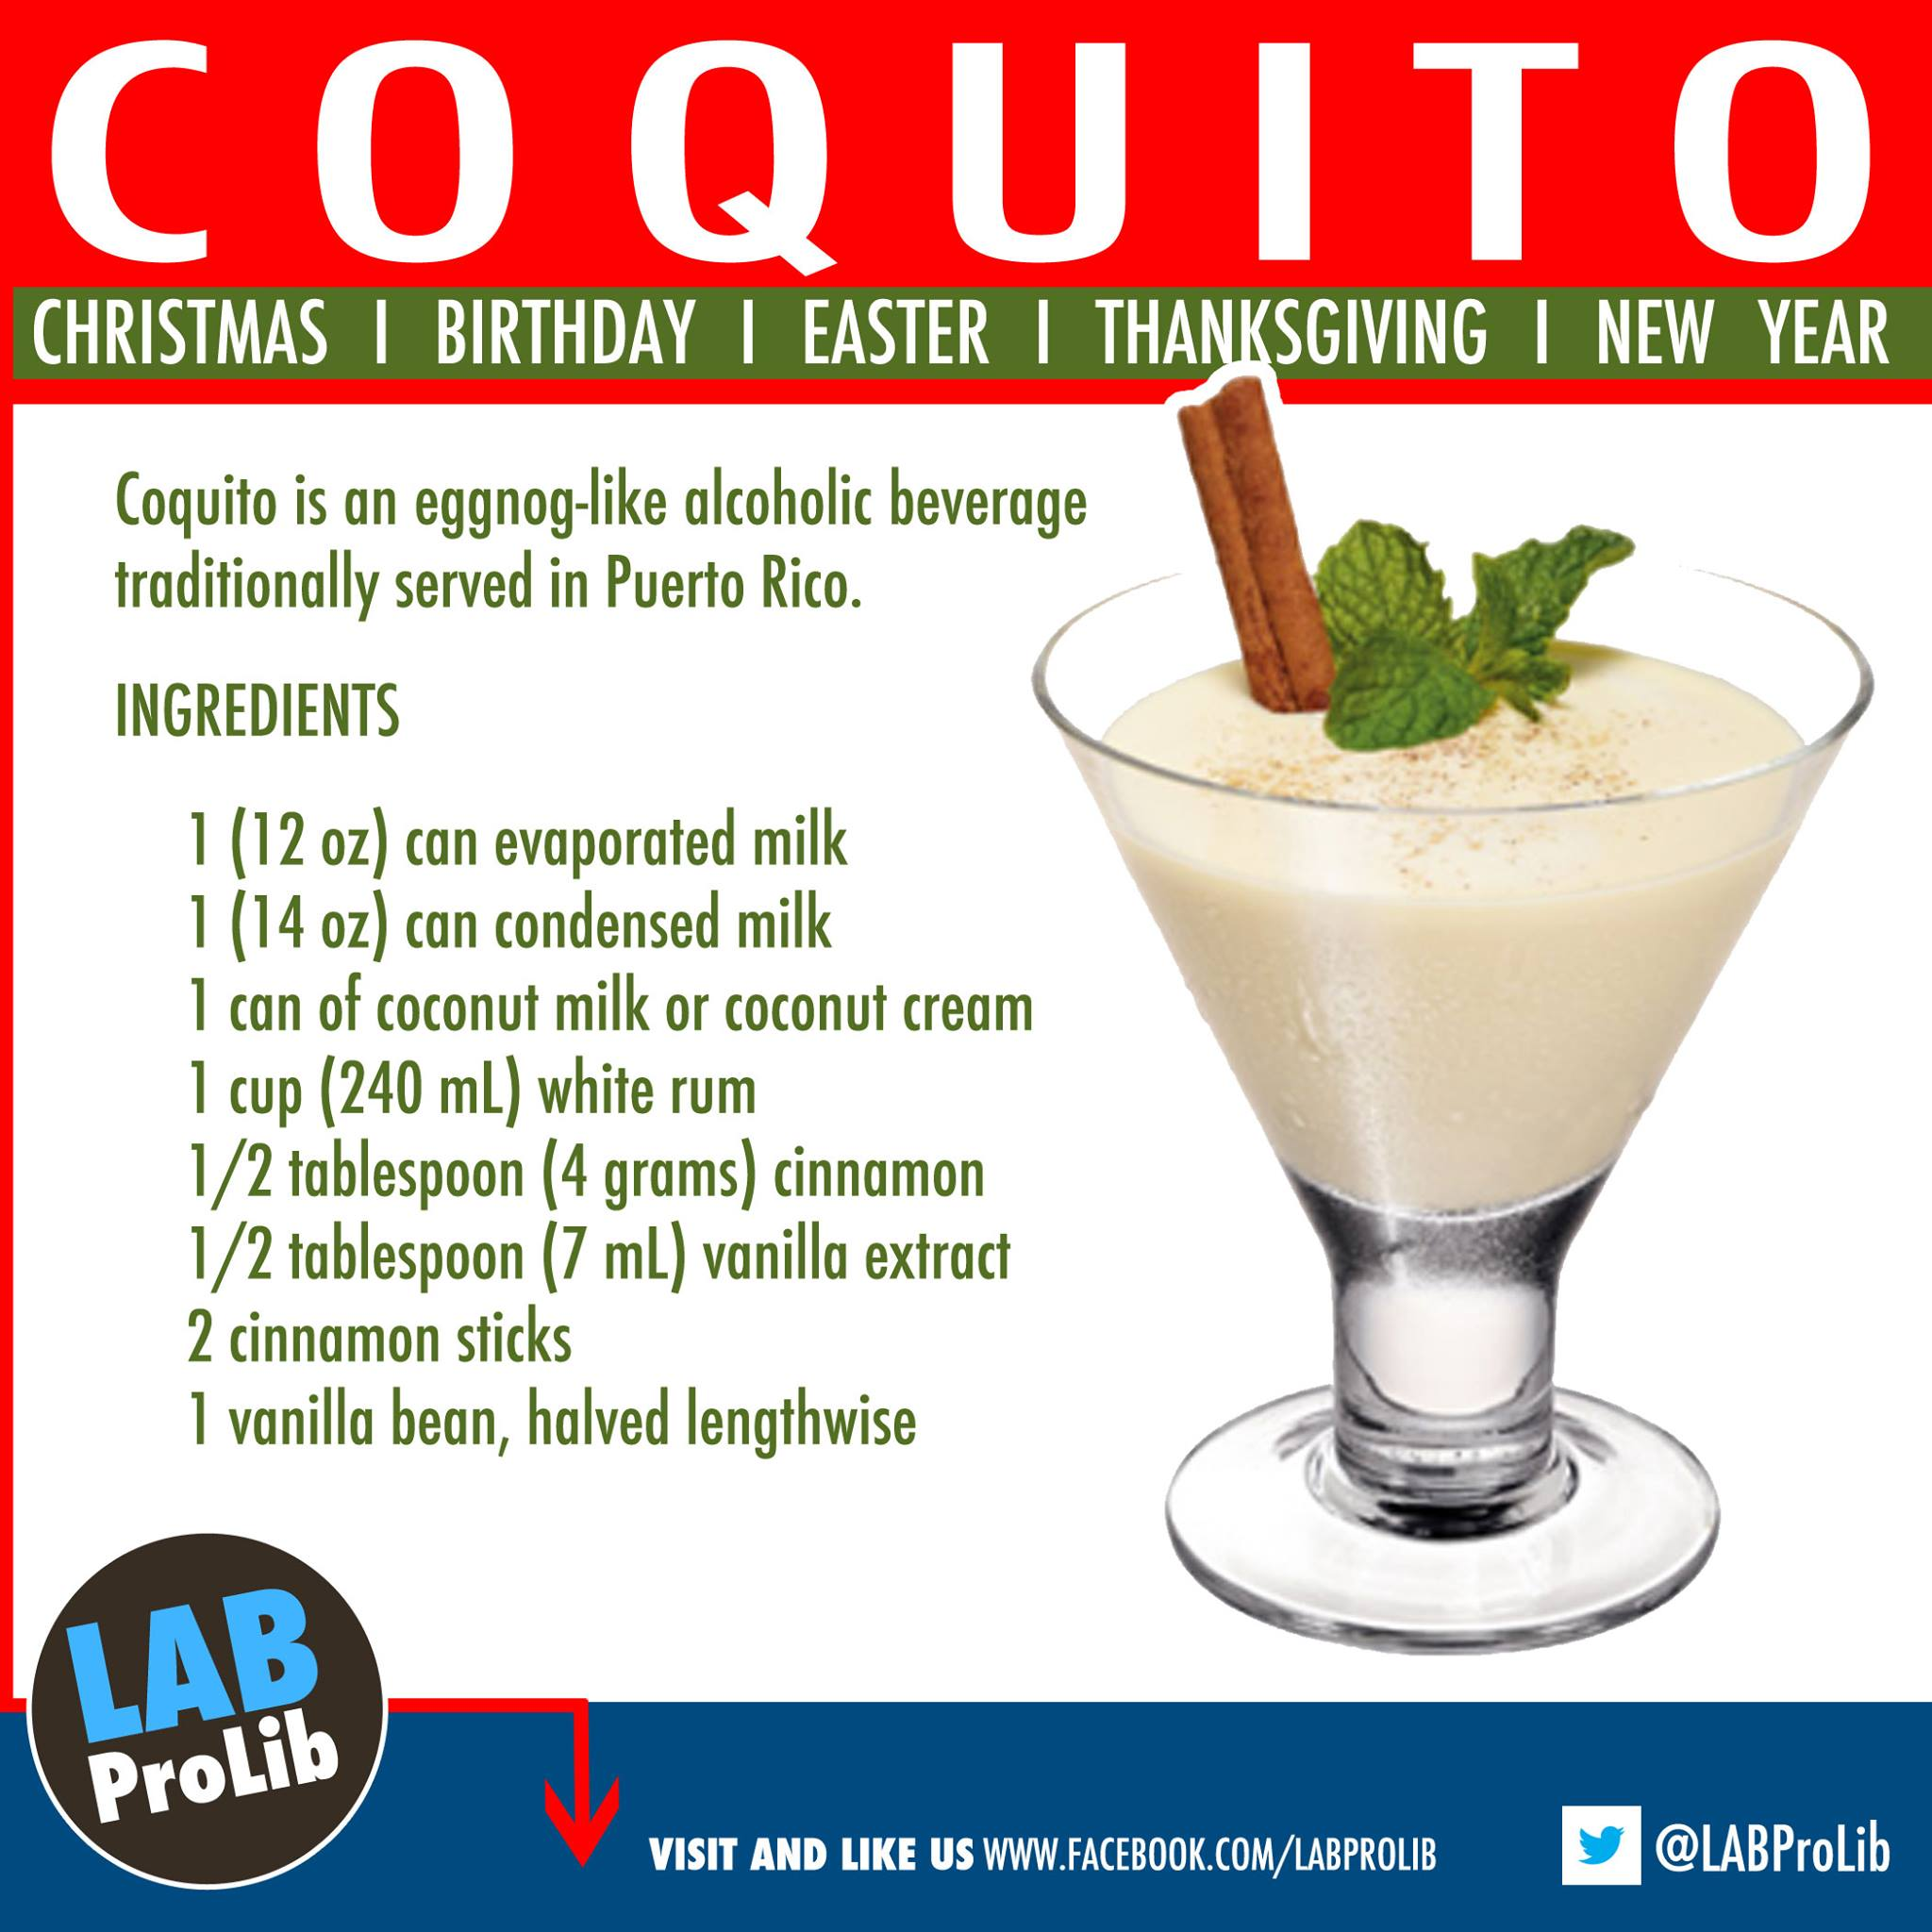 Puerto Rican Christmas Alcoholic Drink